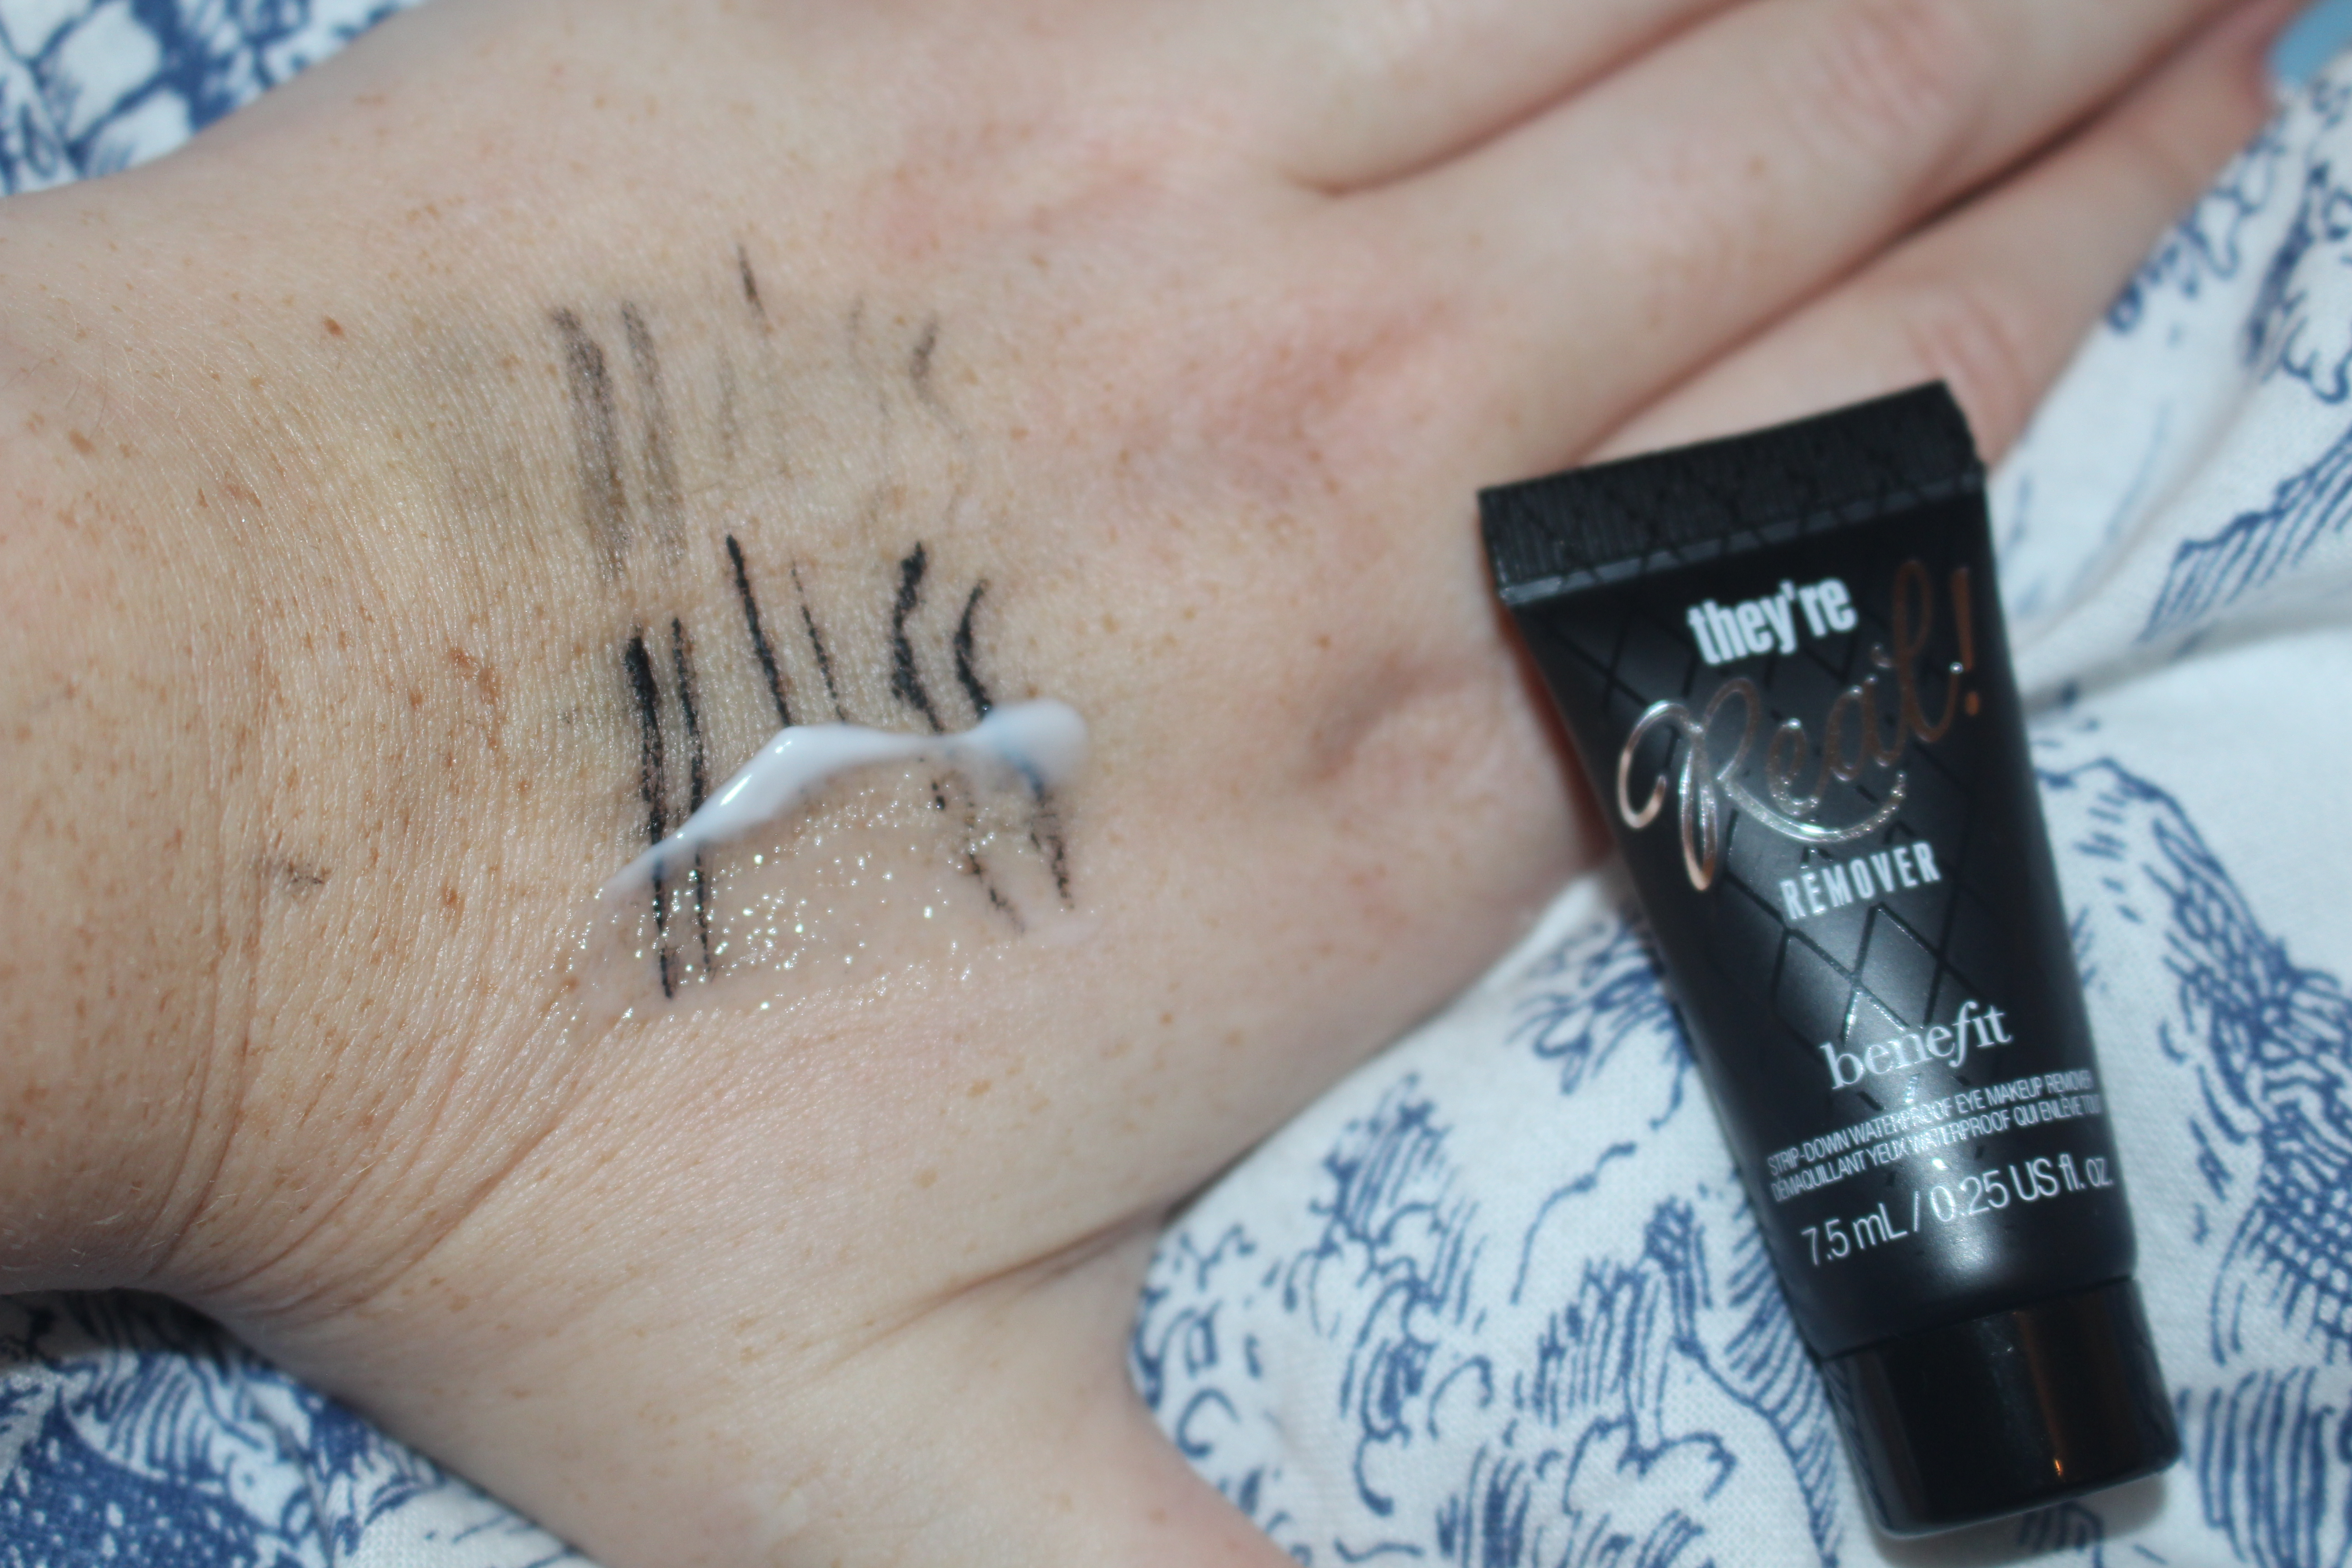 Benefit Theyre Real new release gel eyeliner and remover and posie balm-010